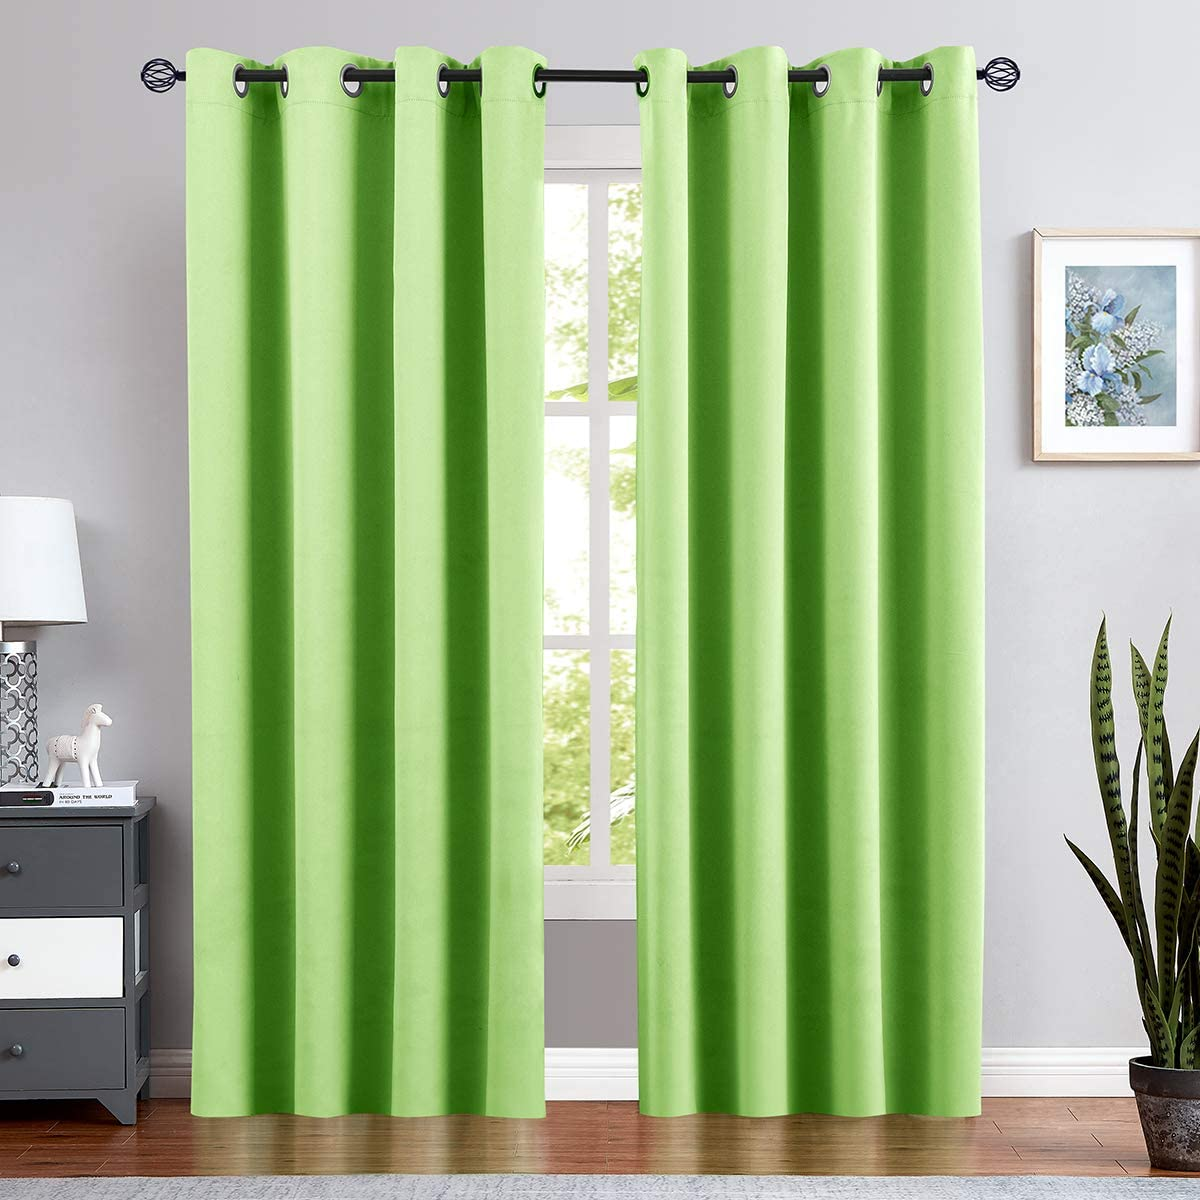 Kids Room Darkening Curtains for Bedroom 95 in Length Nursery Moderate Blackout Curtains for Boy's Room Triple Weave Window Curtains Grommet Top Drapes, 1 Pair, Grass Green